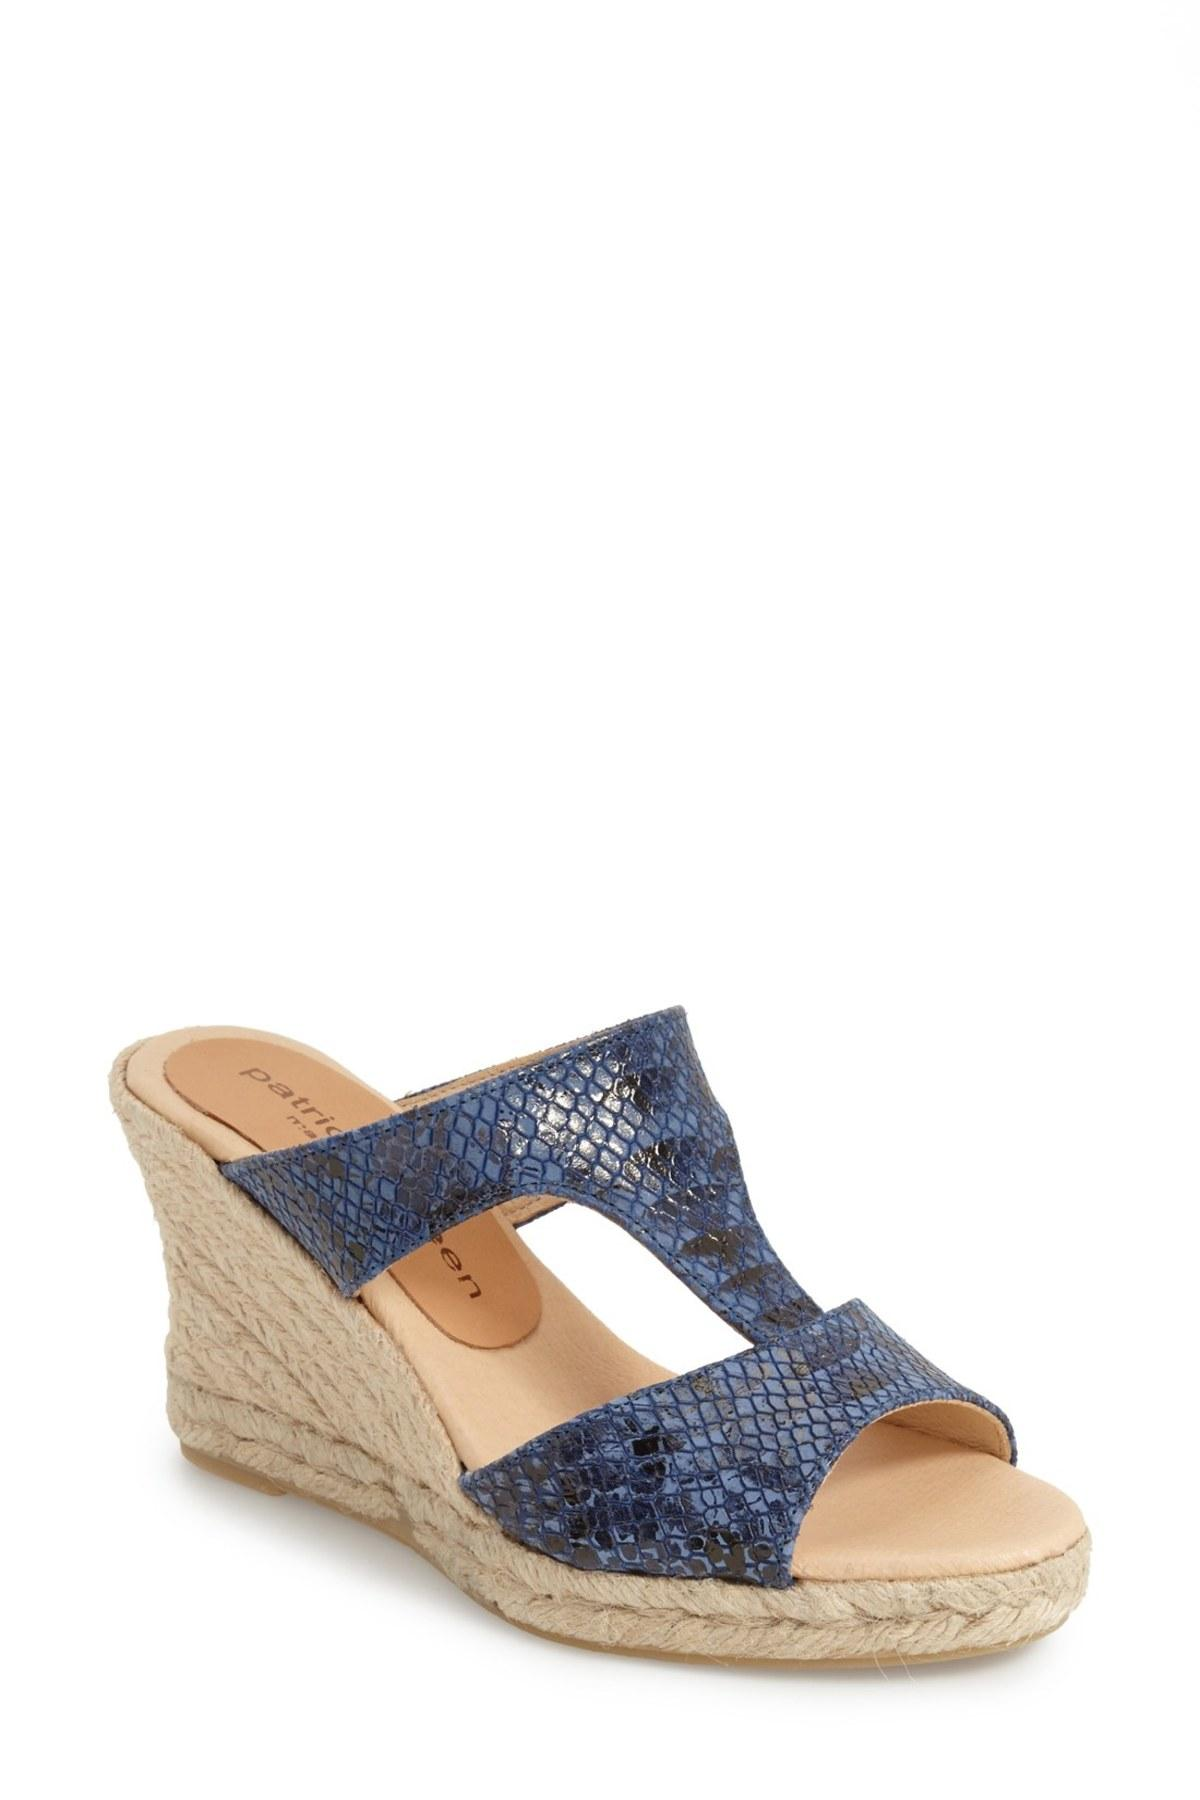 Lyst Patricia Green Snake Embossed Wedge Sandal In Blue